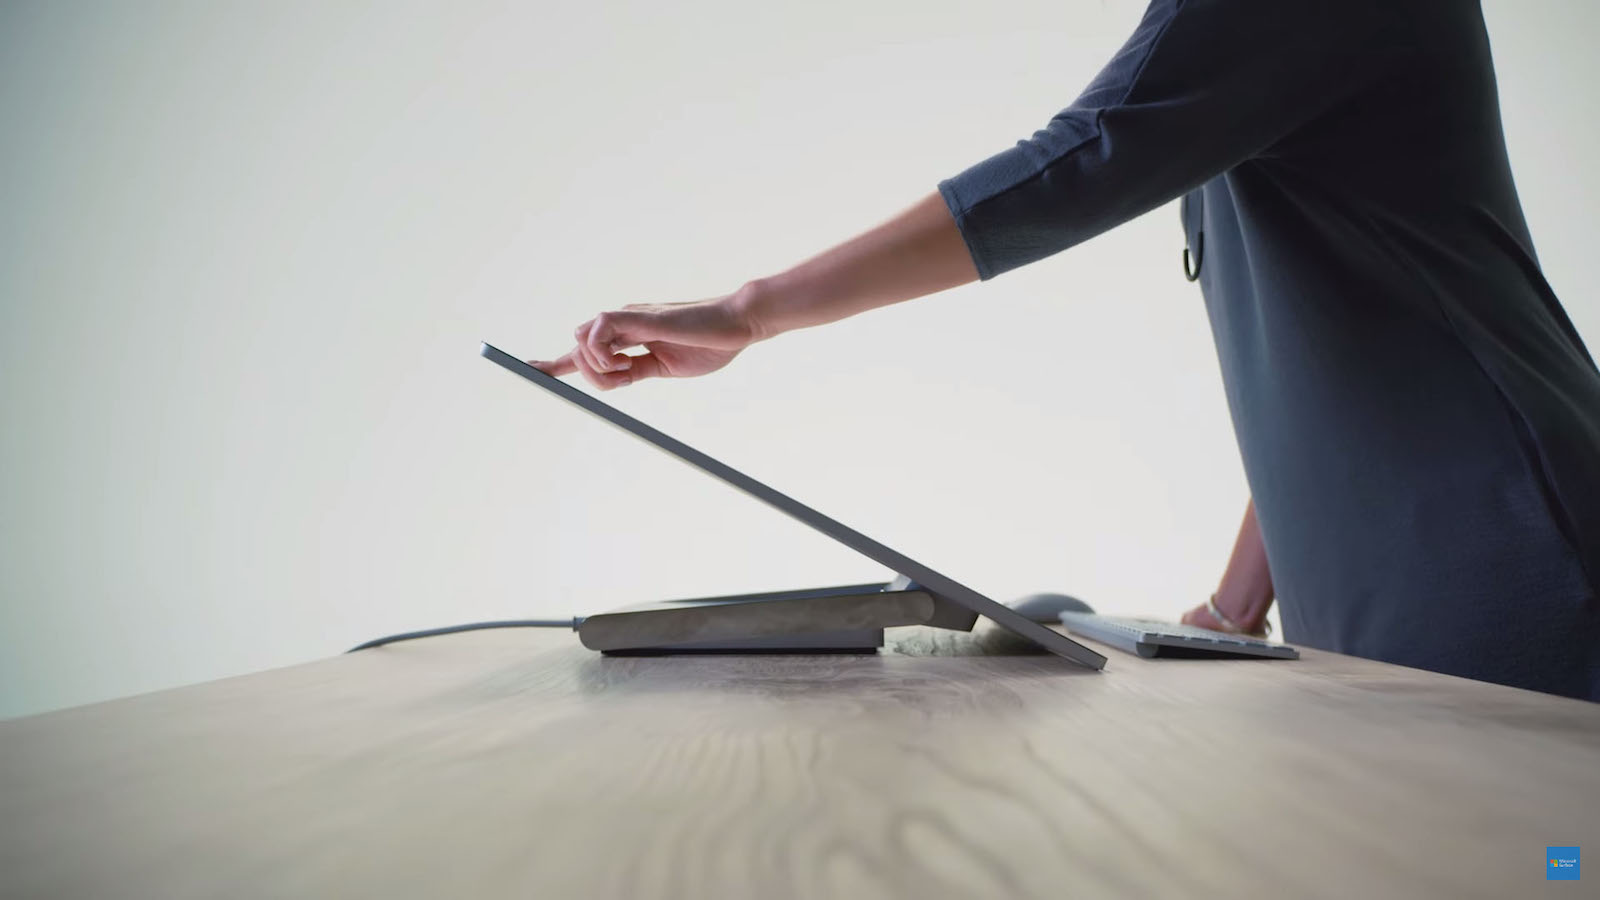 Surface Studio Zero Gravity Hinge